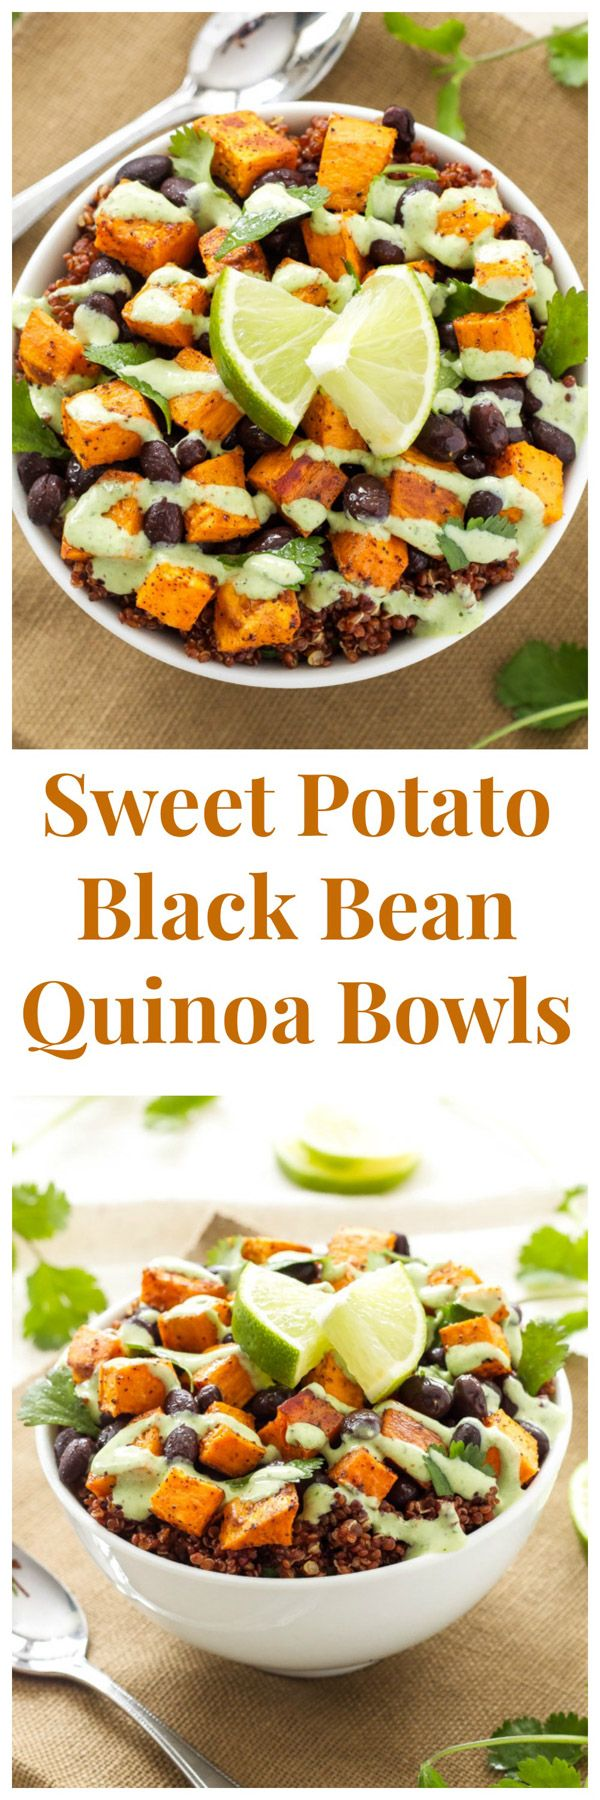 filling    and that   www reciperunner com delicious  A Bean white      max please vegetarians both Sweet lovers  meat meatless will air Potato Bowls Quinoa grey Black meal and